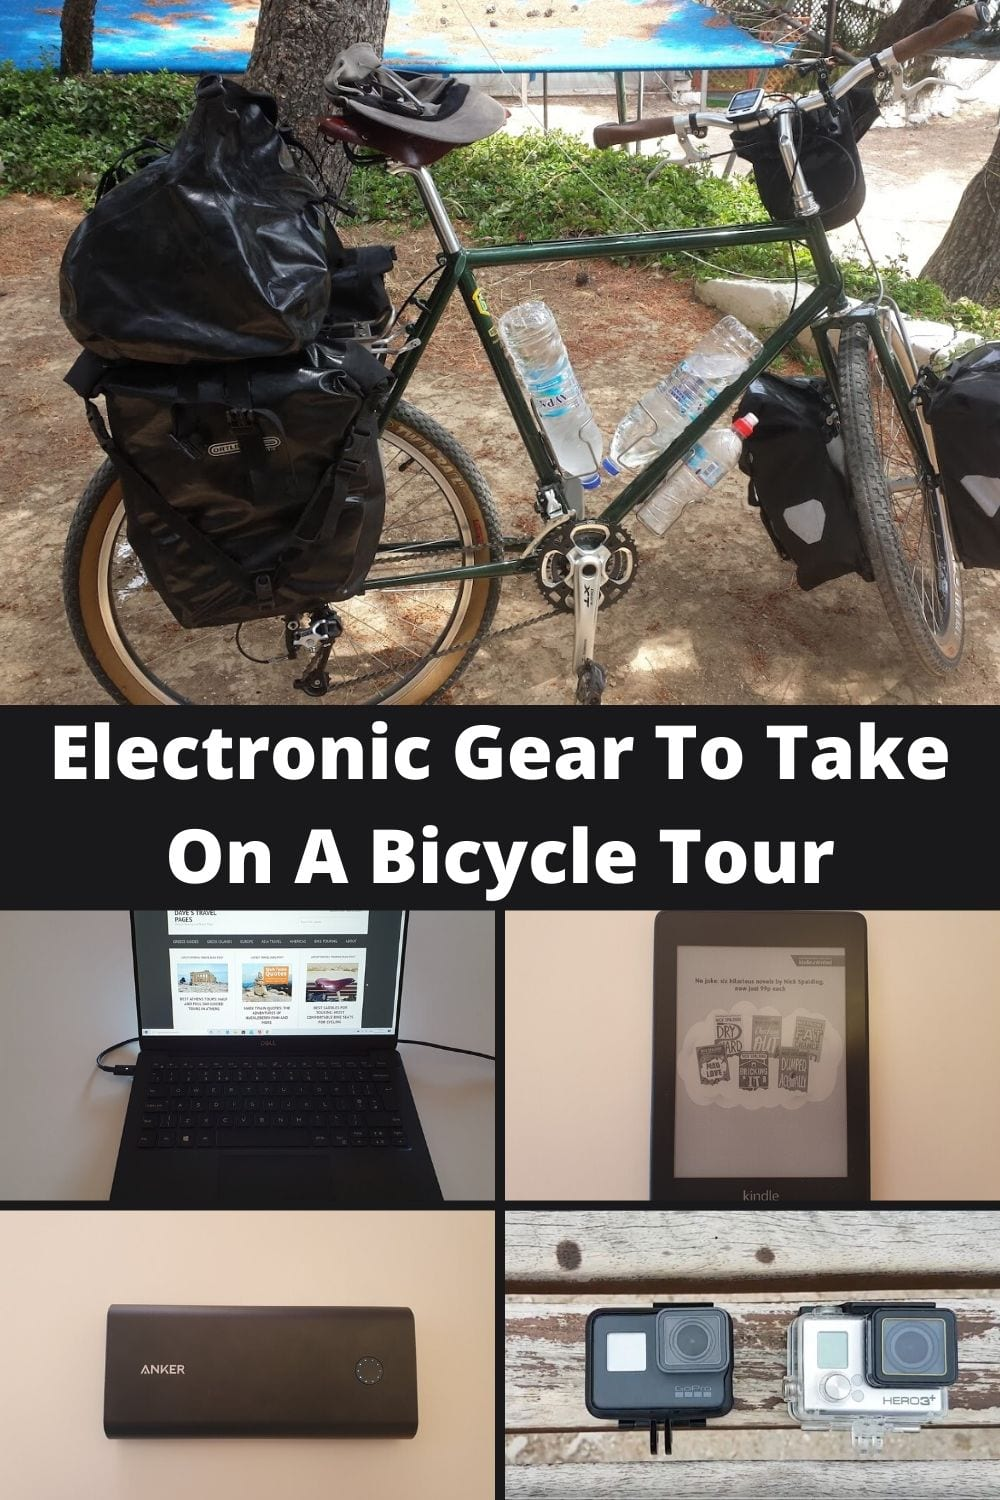 A guide to what electronic gear to take on a bicycle tour